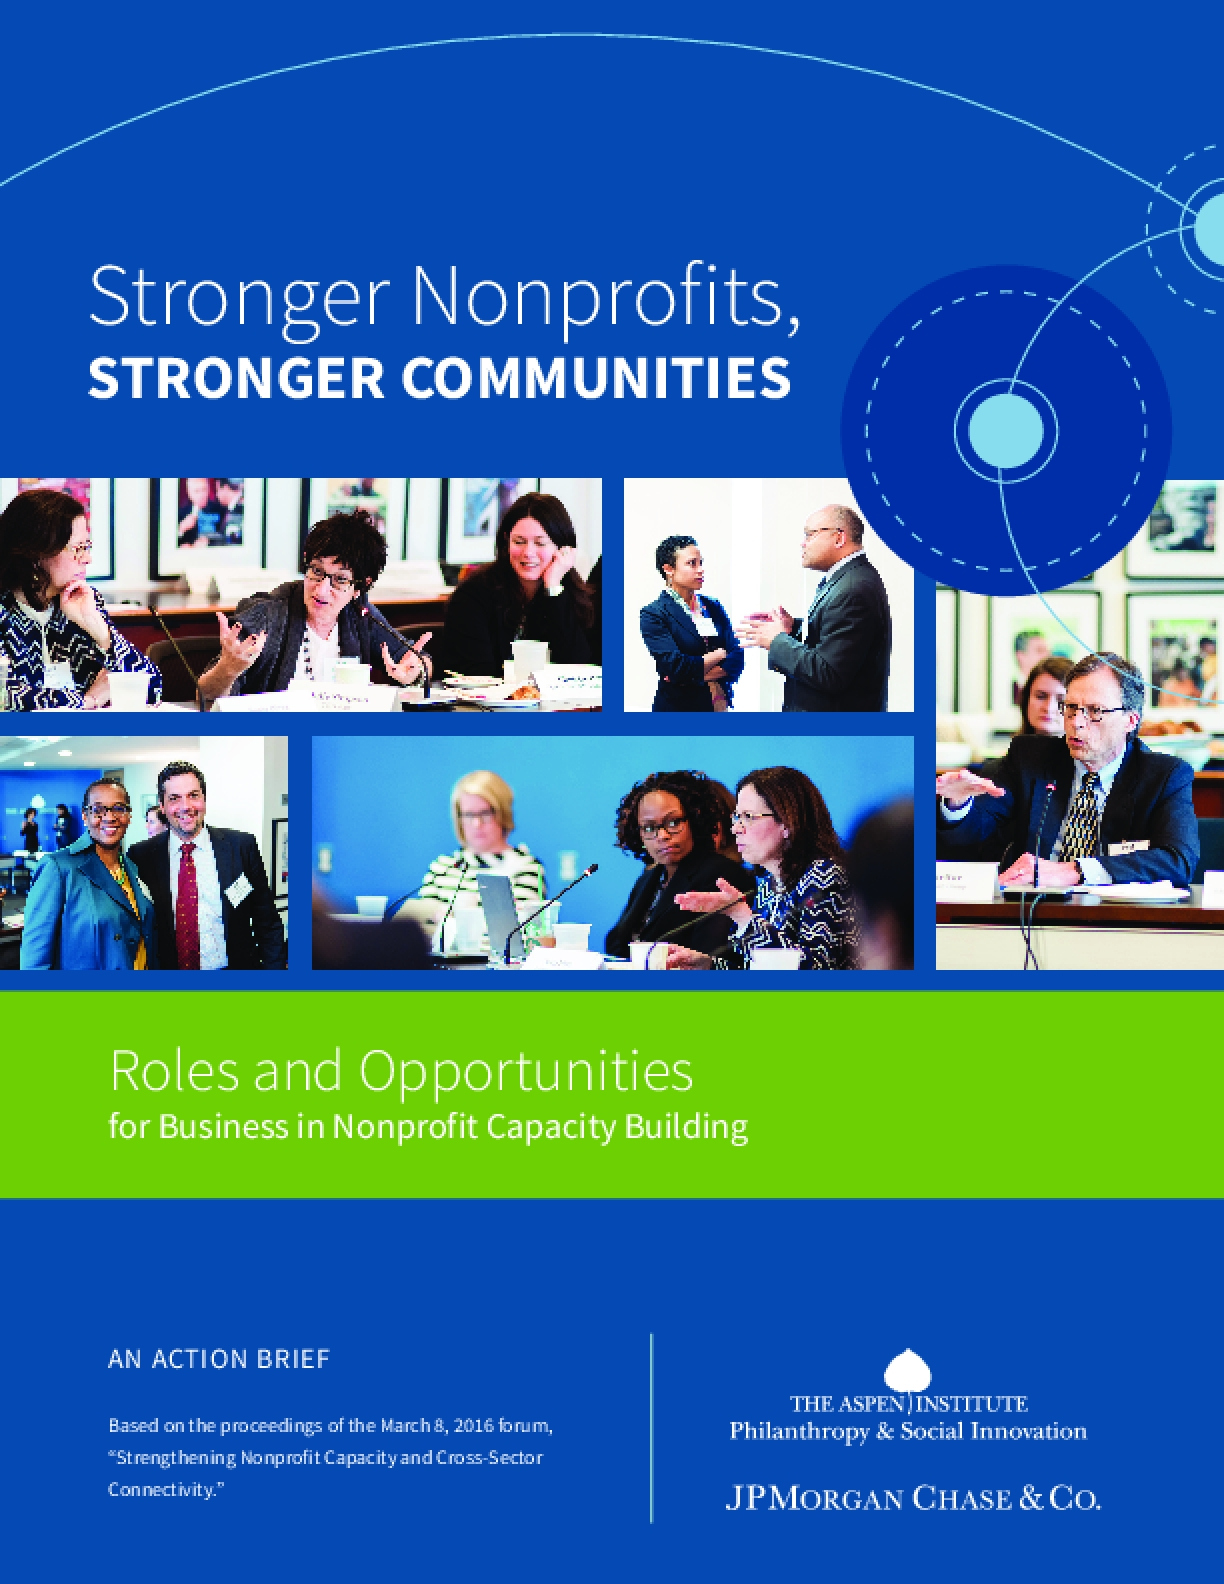 Stronger Nonprofits, Stronger Communities